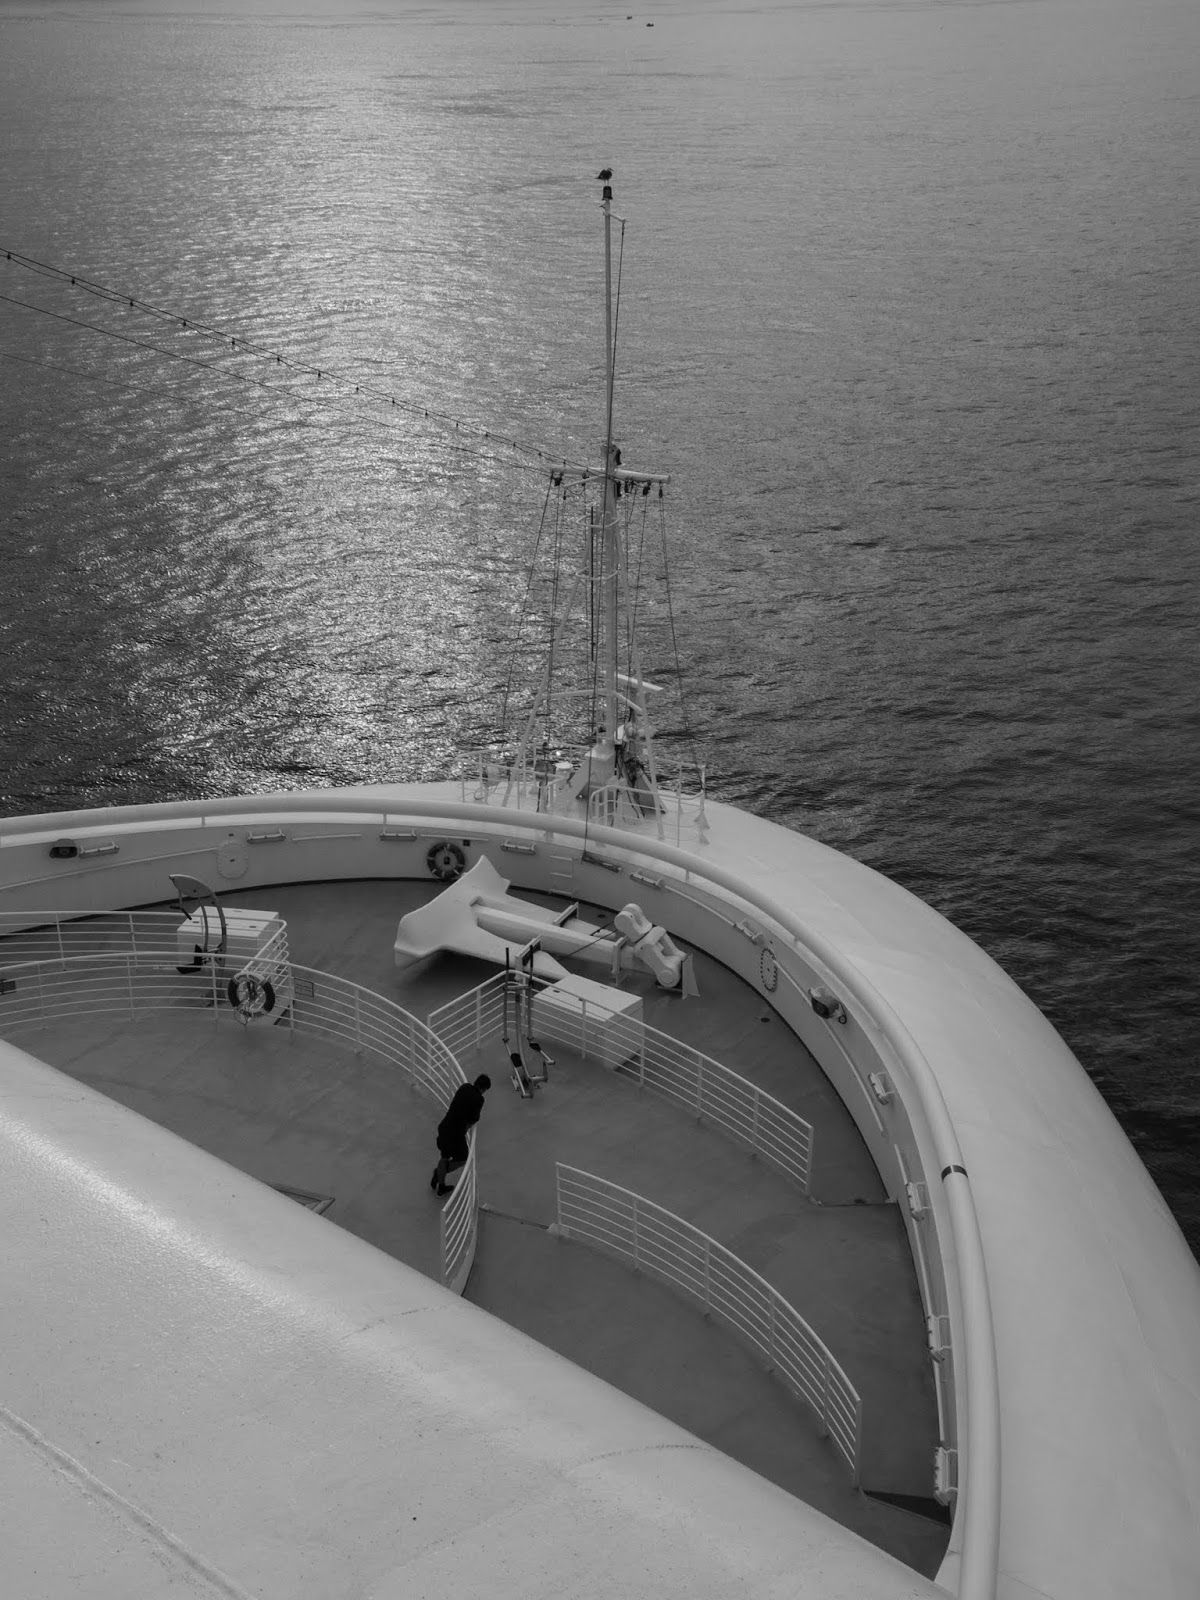 A black and white view from the Sapphire Princess cruise ship.